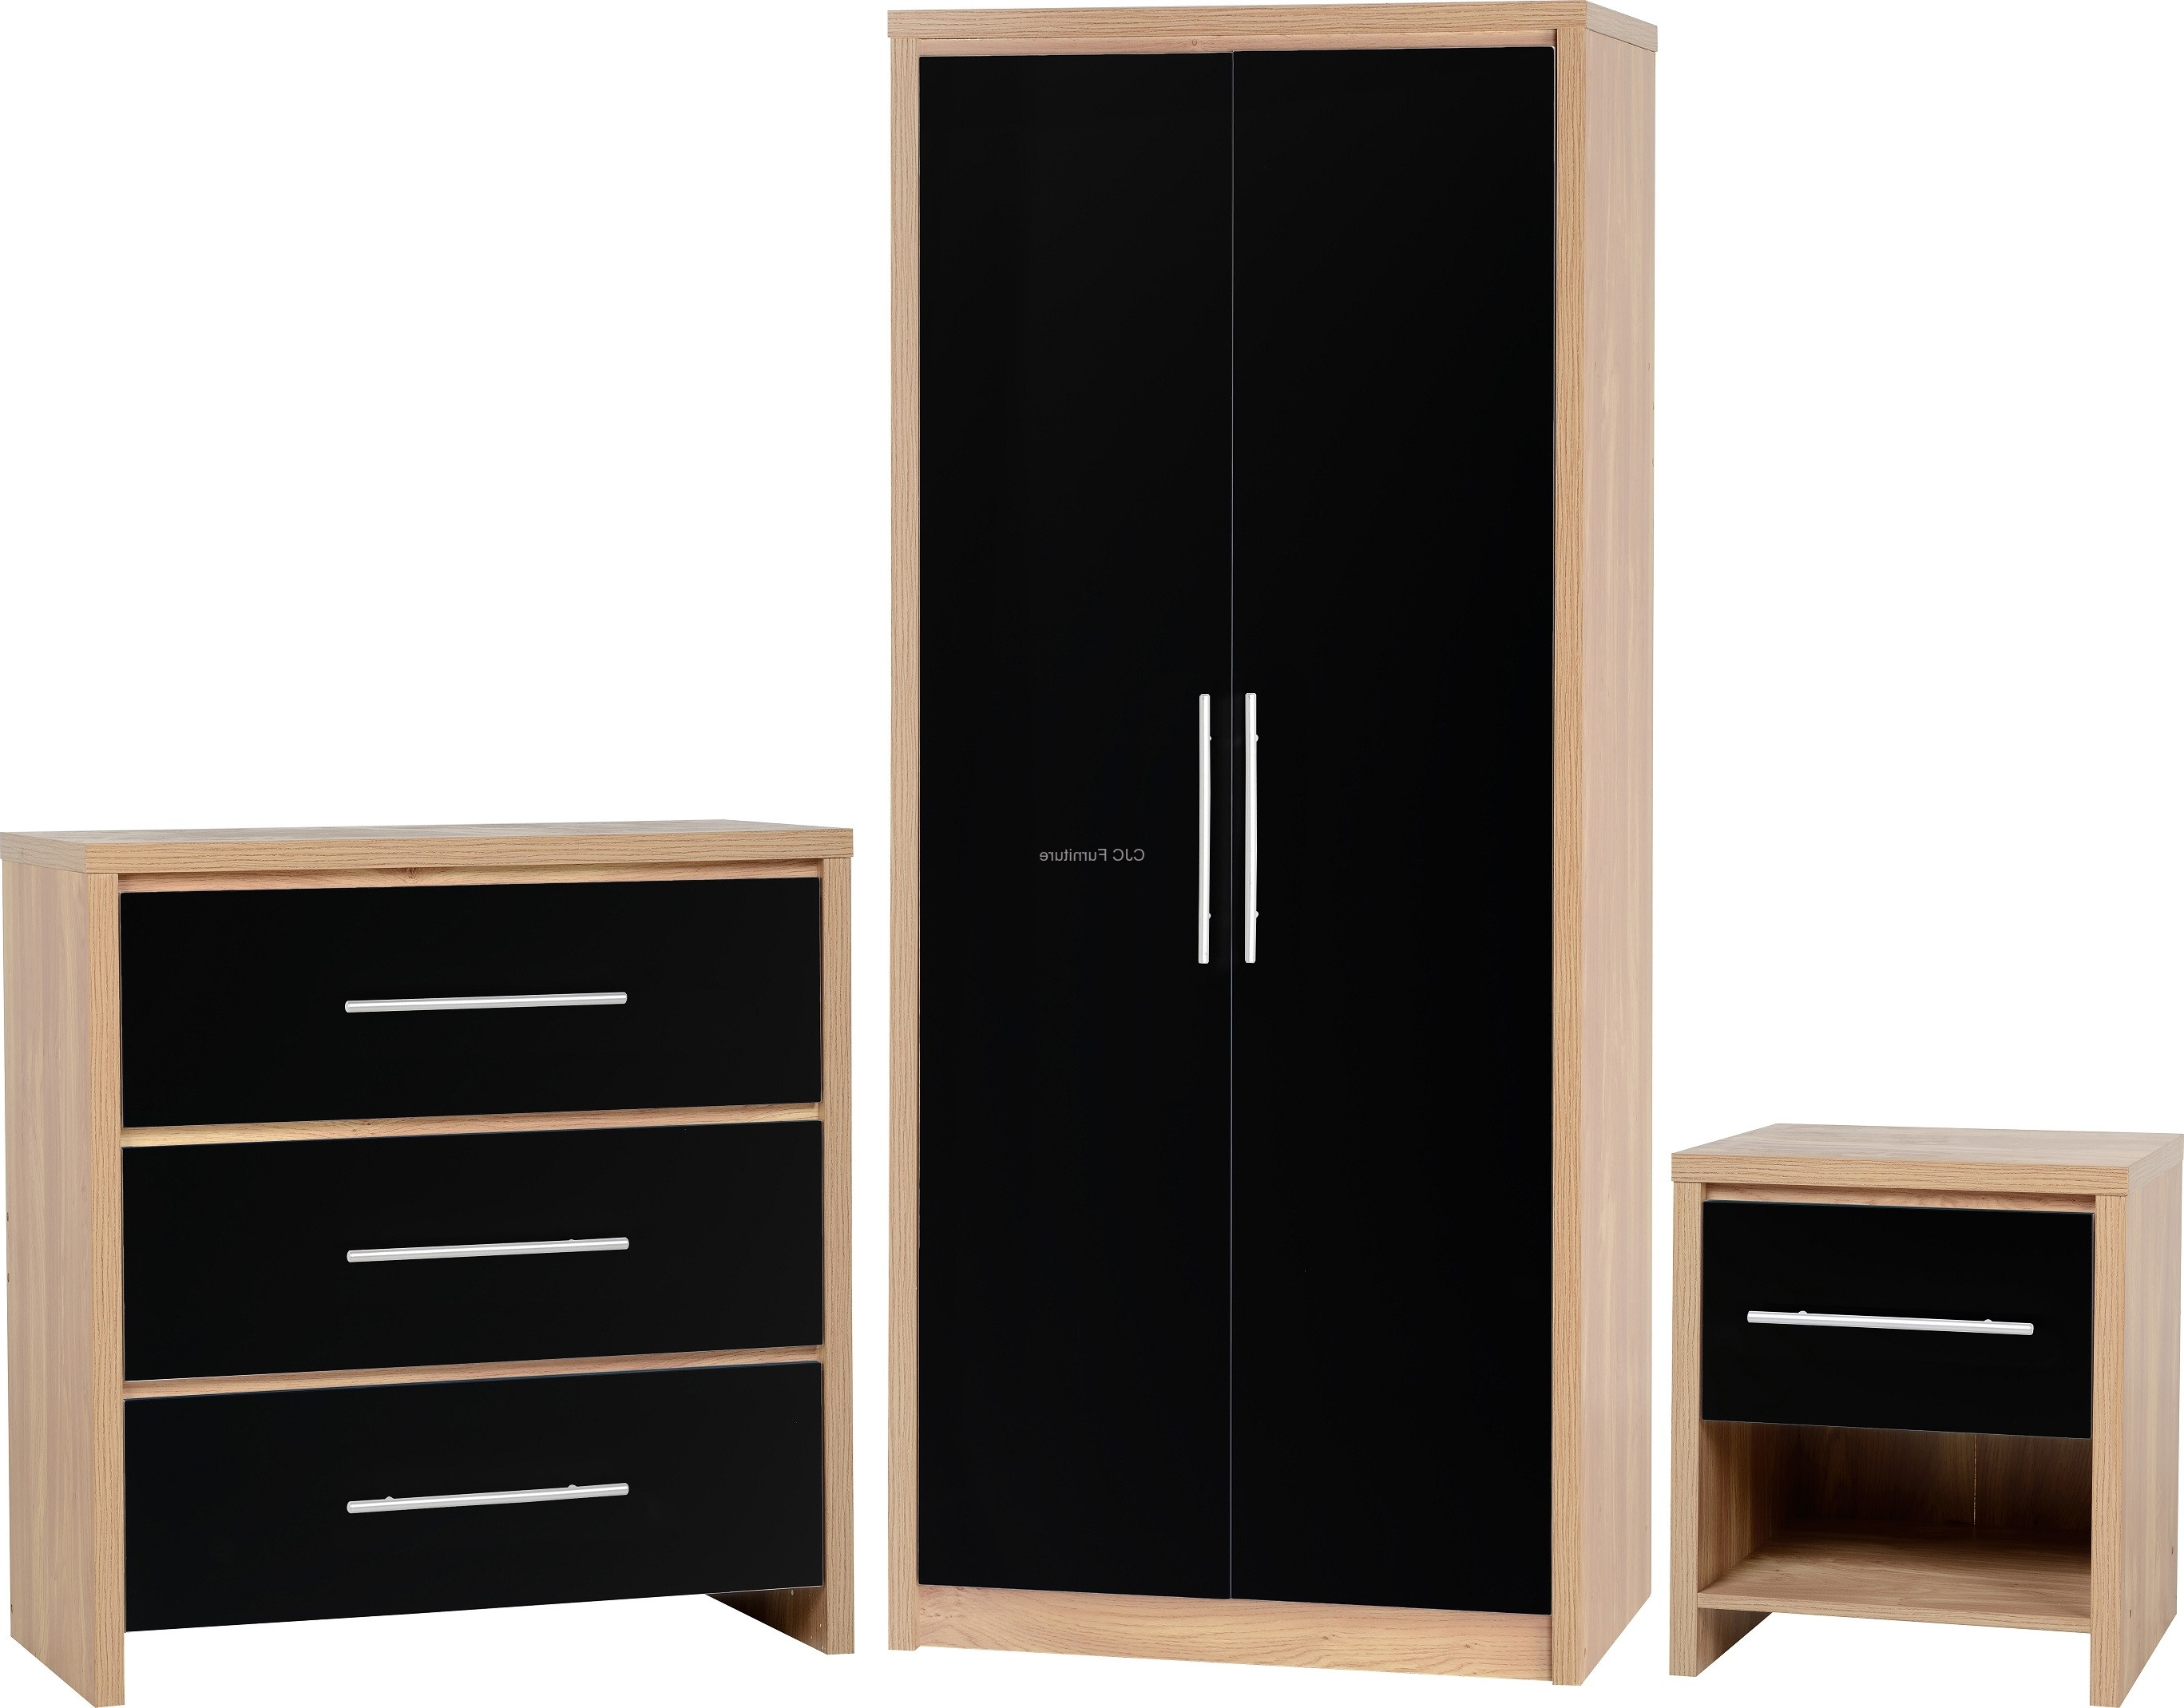 Wardrobes And Chest Of Drawers Combined Intended For Well Liked Birmingham Furniture – Cjcfurniture.co (View 11 of 15)